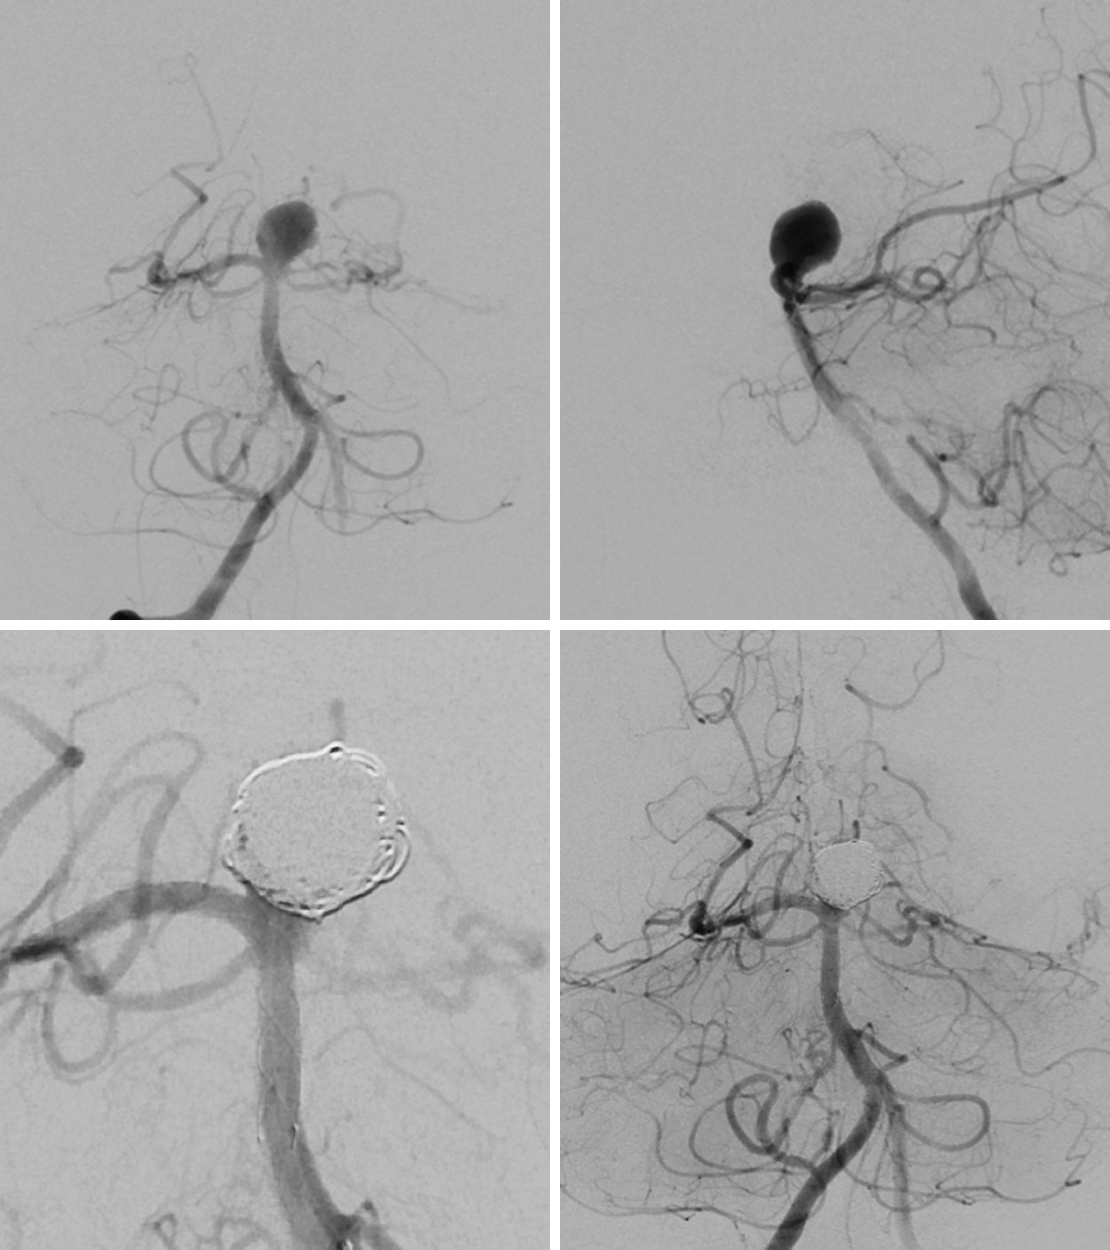 Figure 2: The basilar bifurcation aneurysm is demonstrated on AP and lateral angiography (top row). Postprocedural imaging reveals Raymond grade 3 embolization (bottom row).